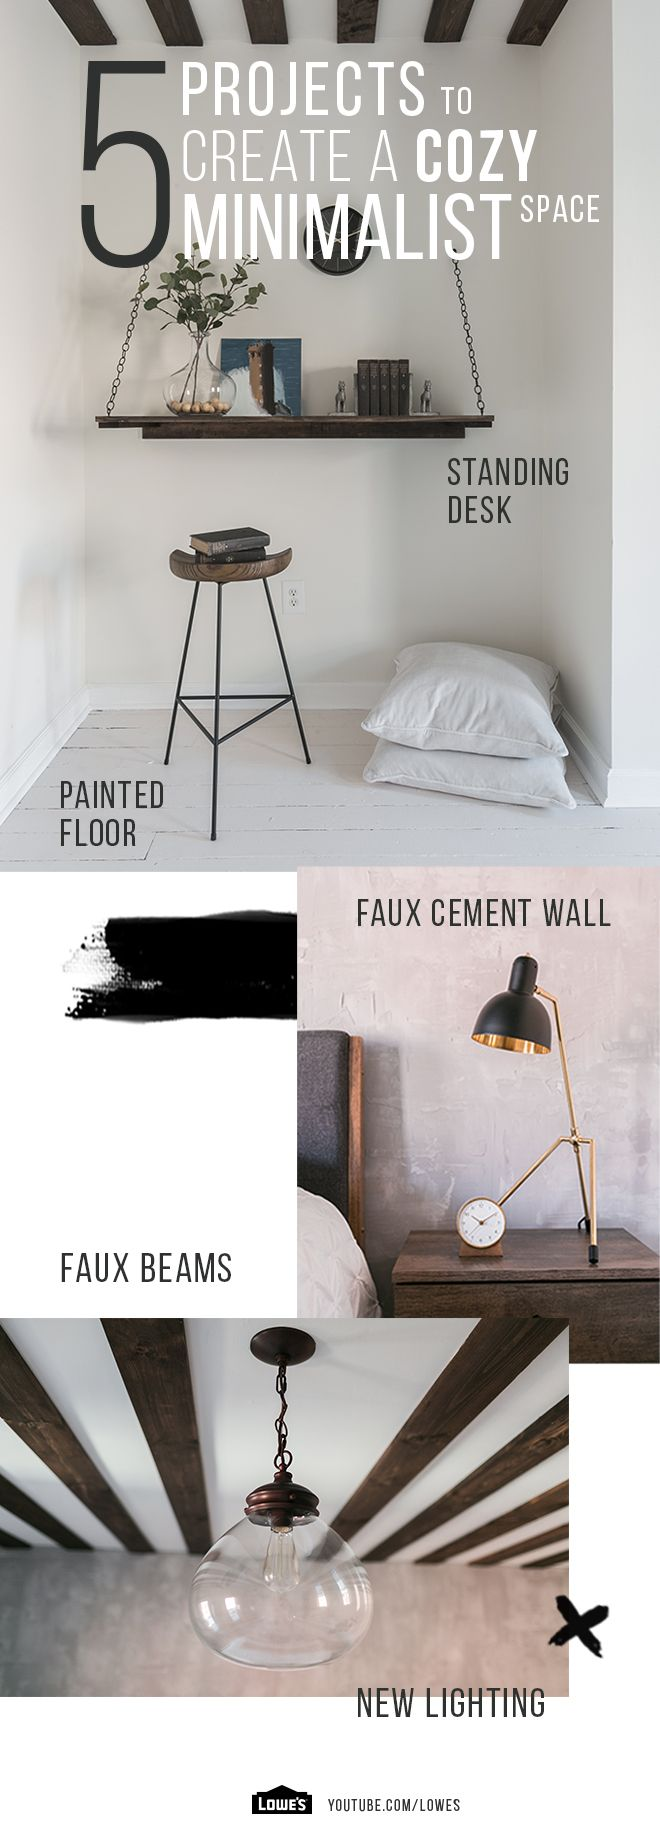 This bedroom transformation takes a turn towards industrial